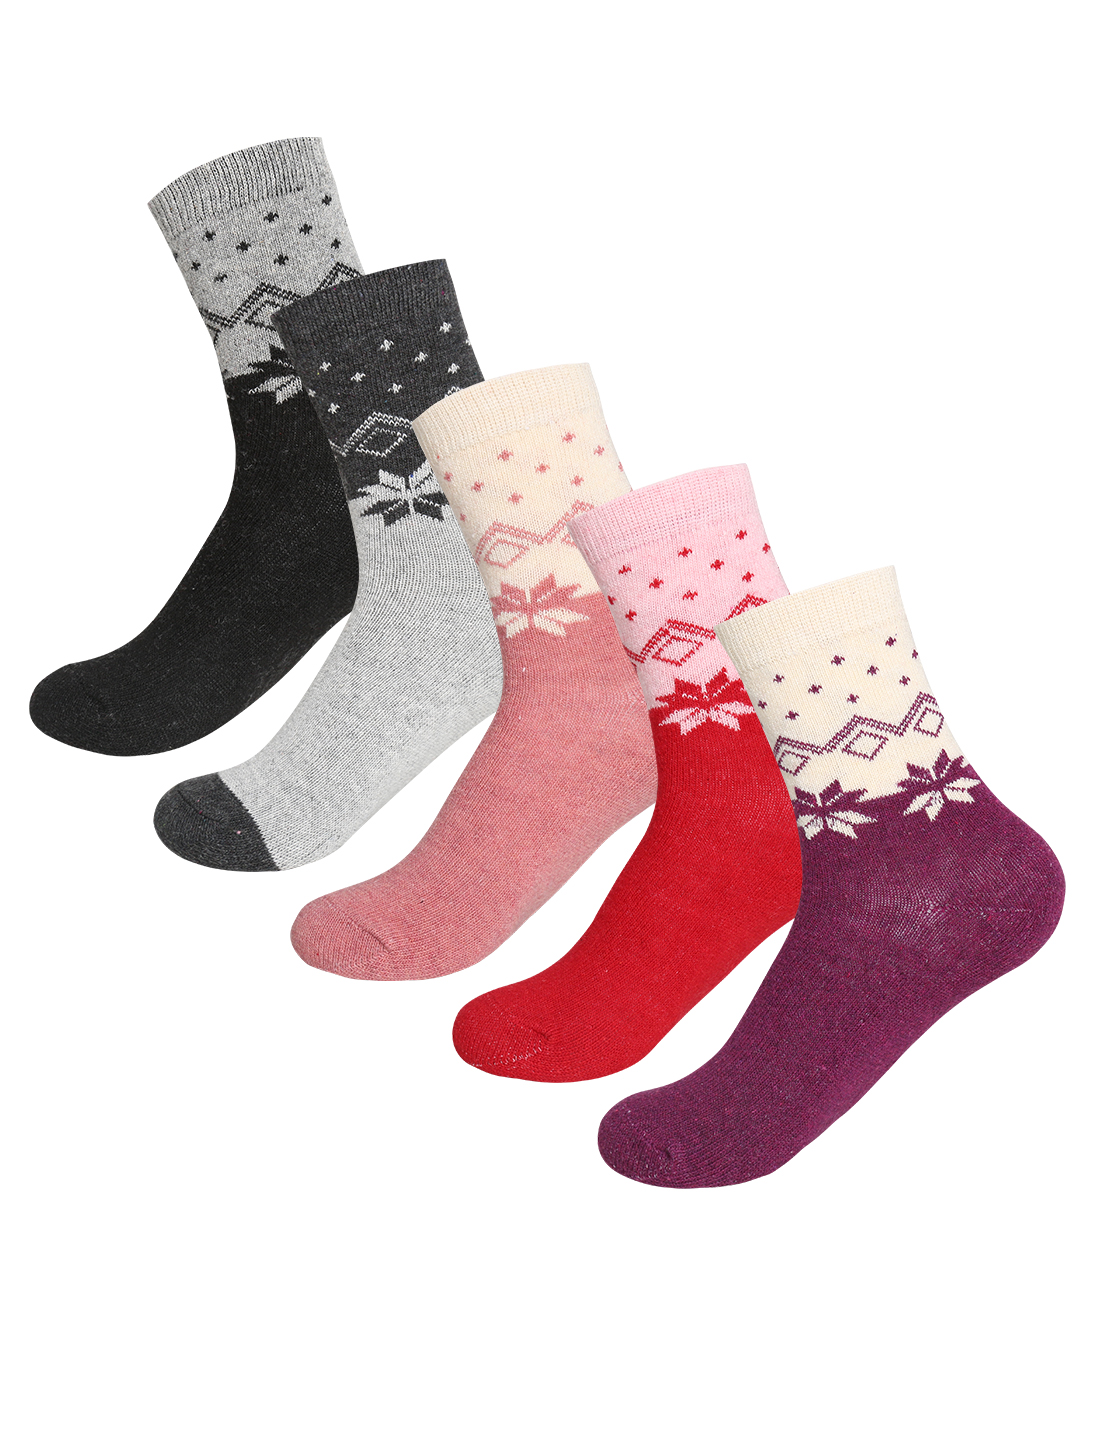 Women 5 Pack Novelty Pattern Thermal Crew Socks 7-9 Assorted-Novelty